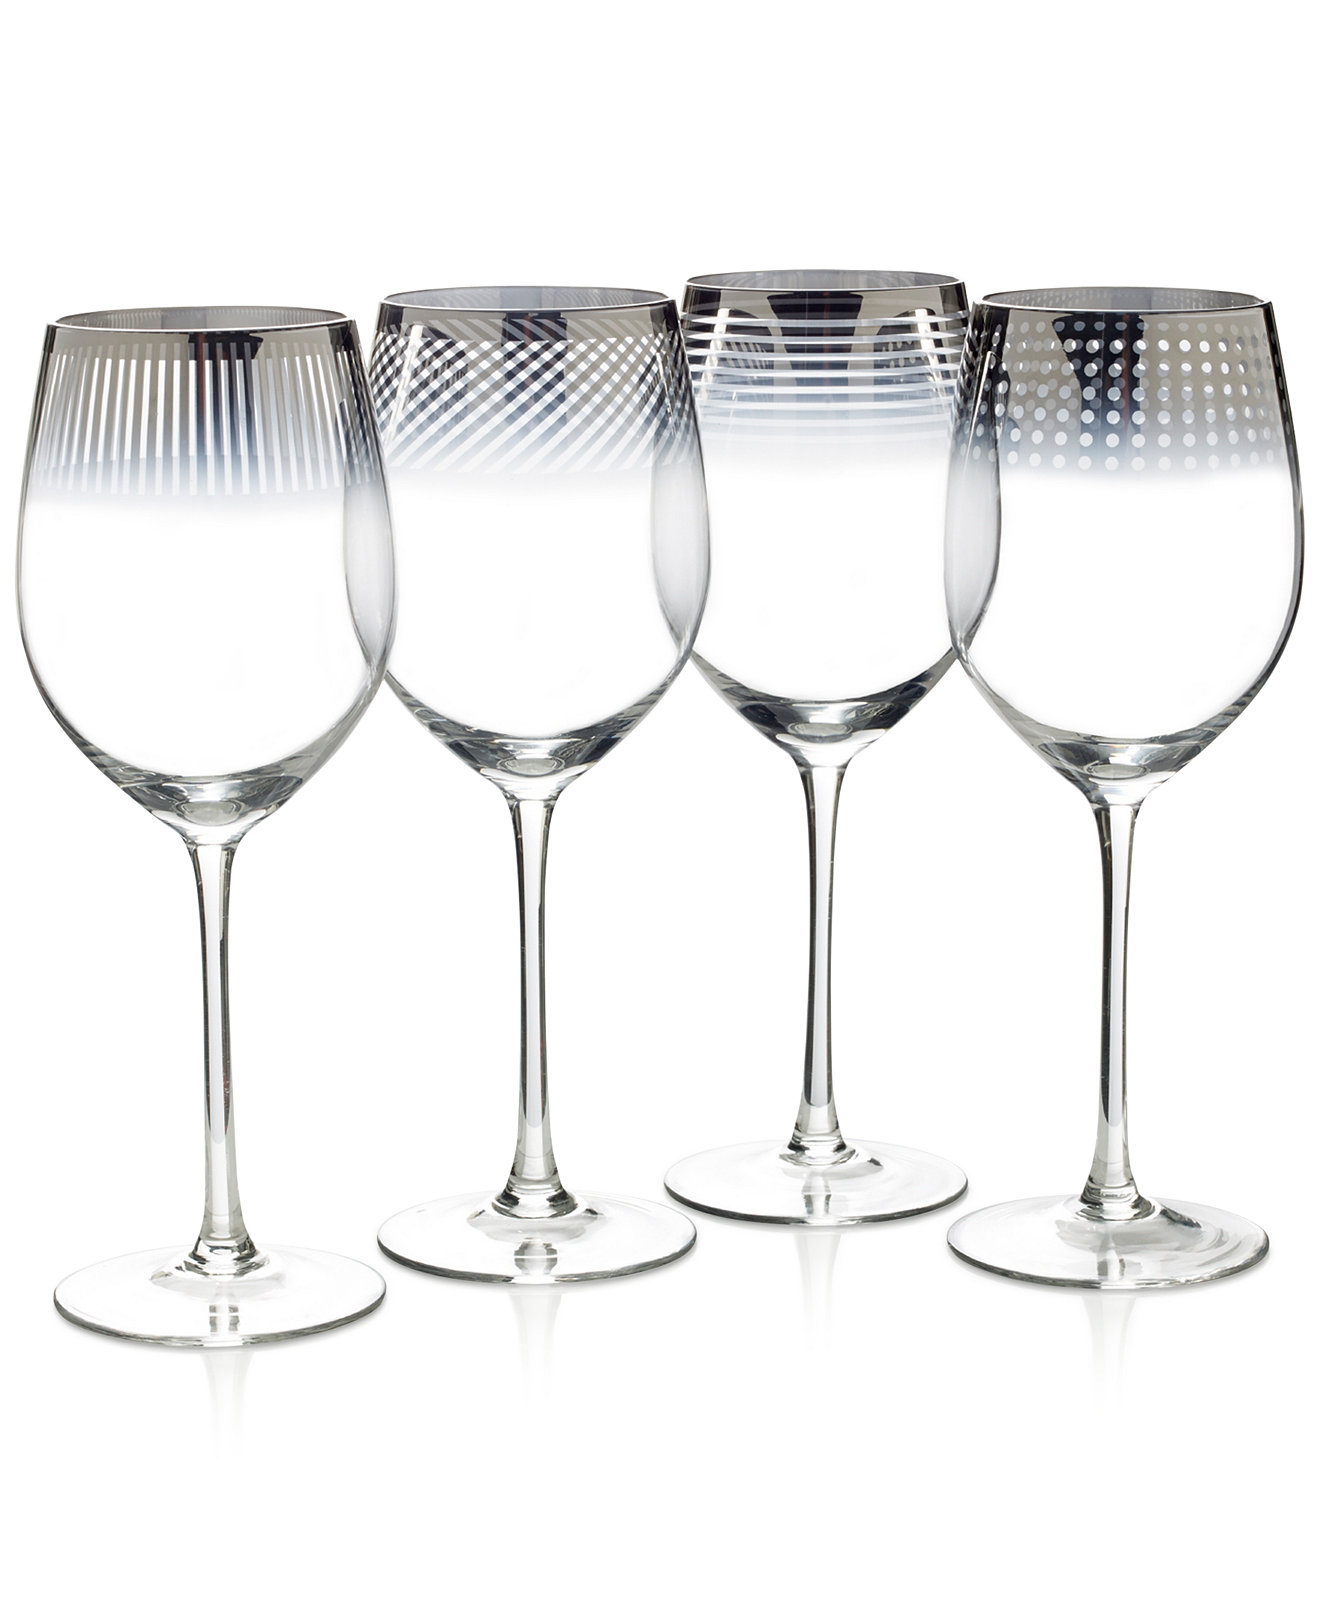 Lovely Mikasa Wine Glasses 4 Pieces